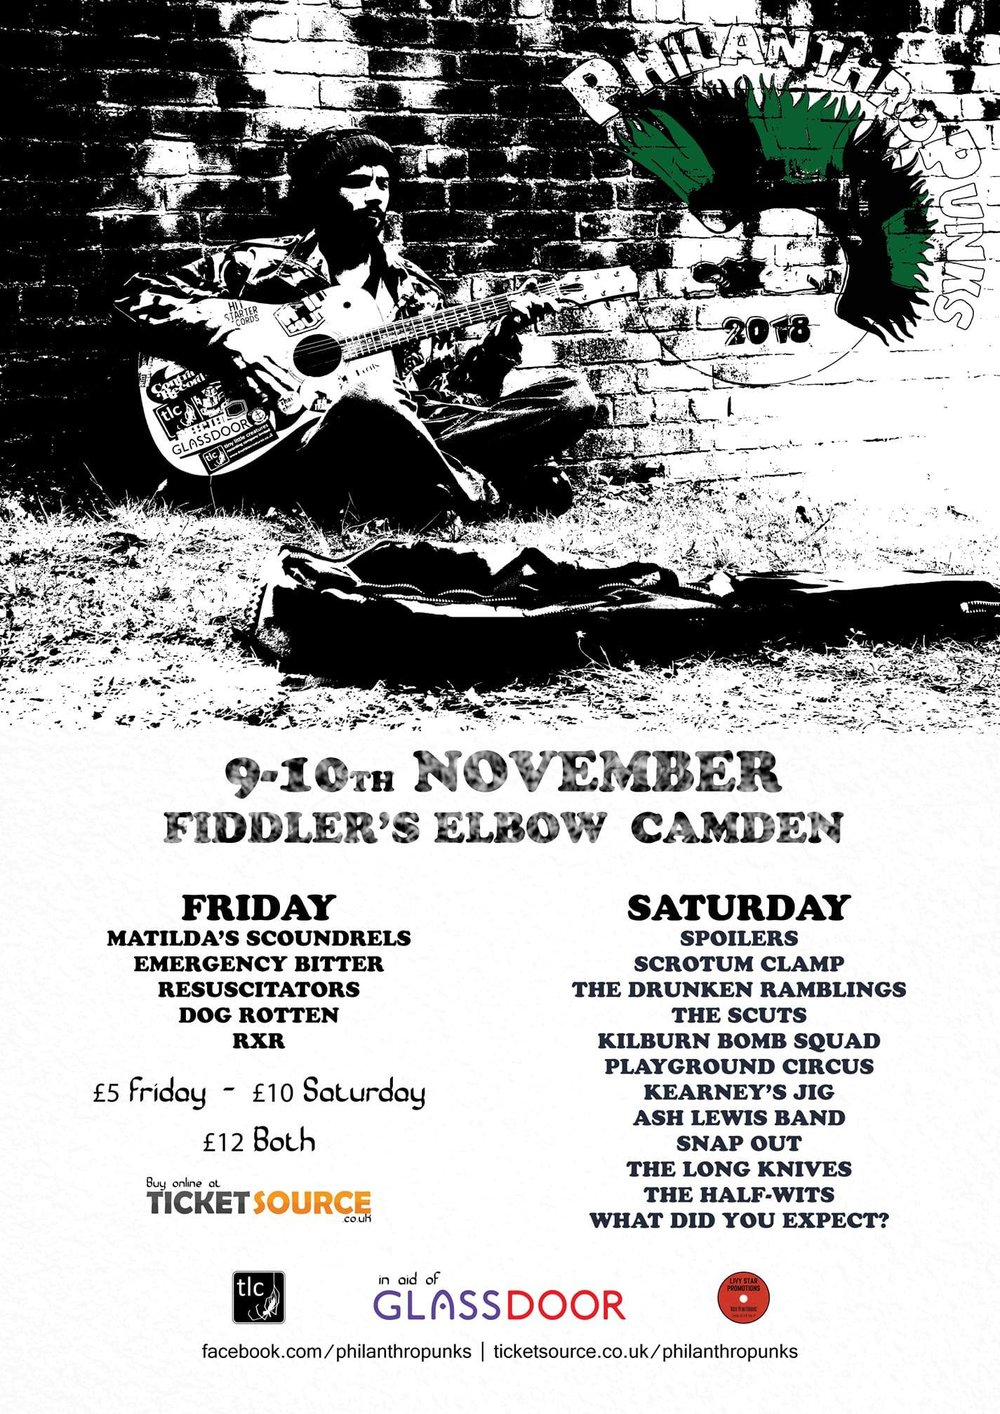 Glass Door Homeless Charity - PUNK at The Fiddler's Elbow promotional image